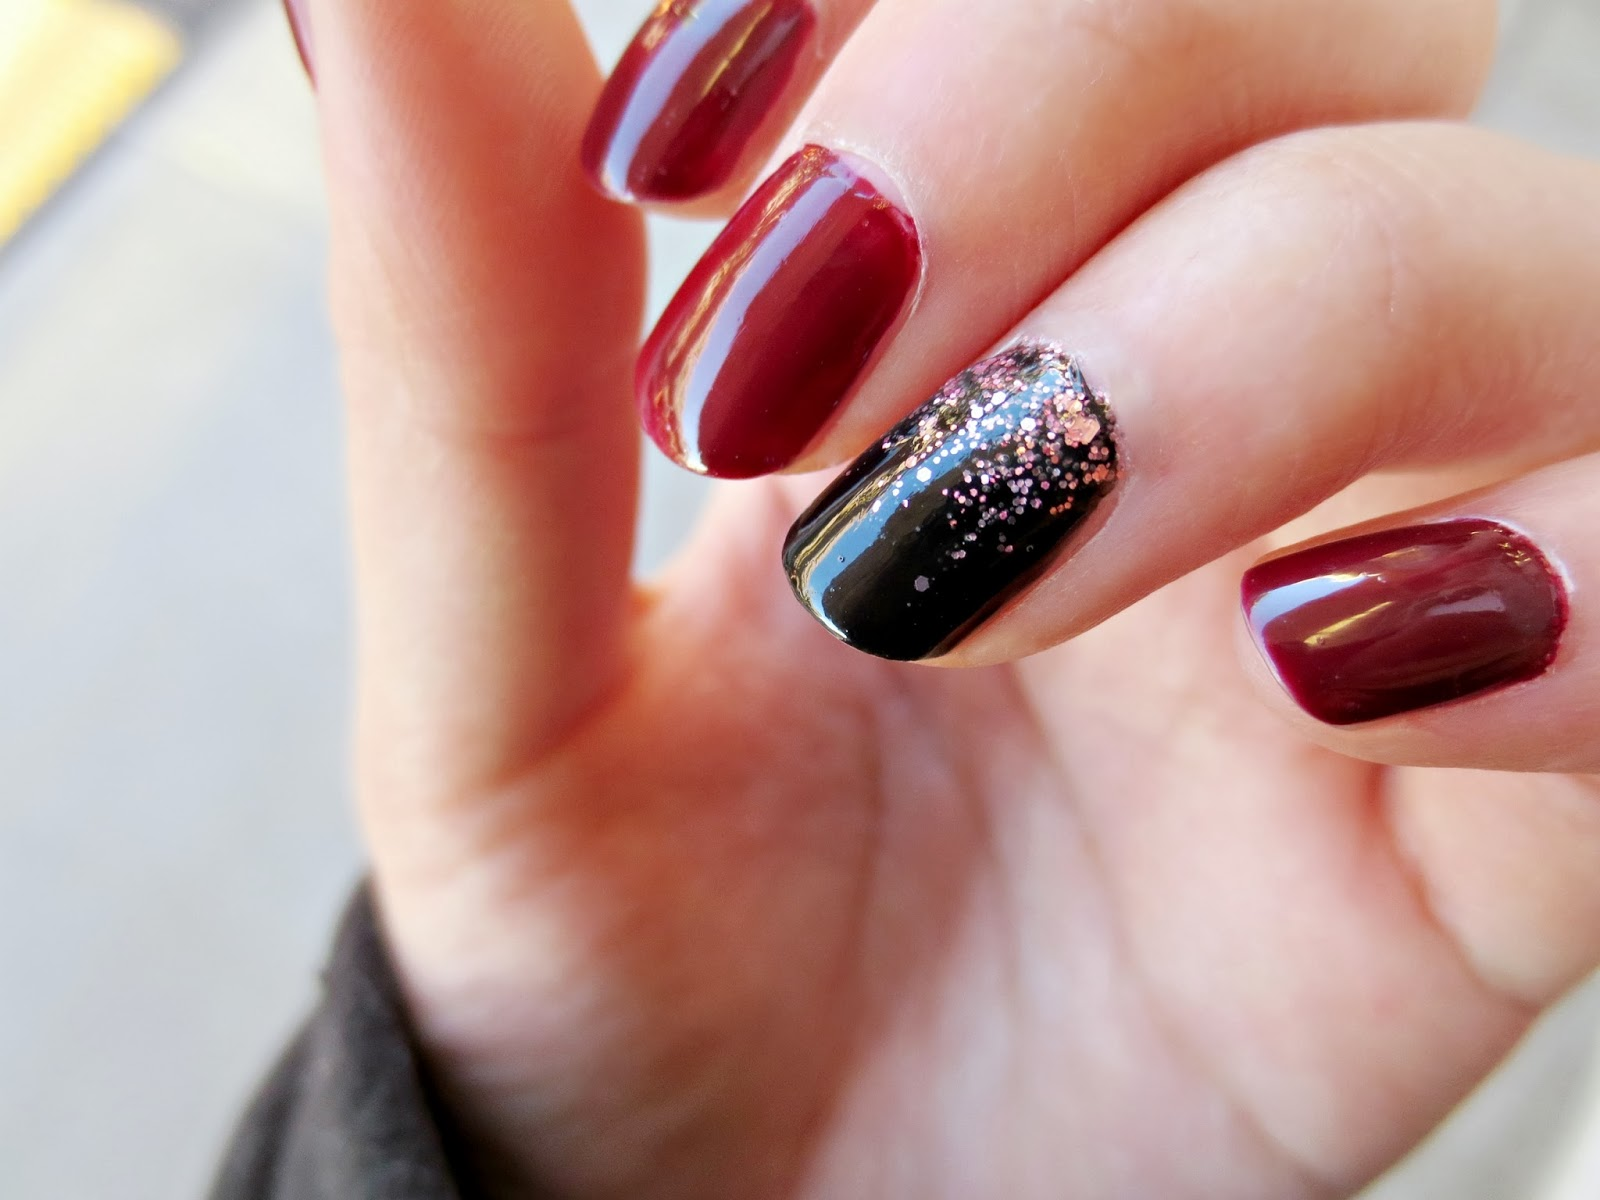 The Lady n\' The Tramp: NOTD: Burgundy Nails with a Glitter Gradient ...